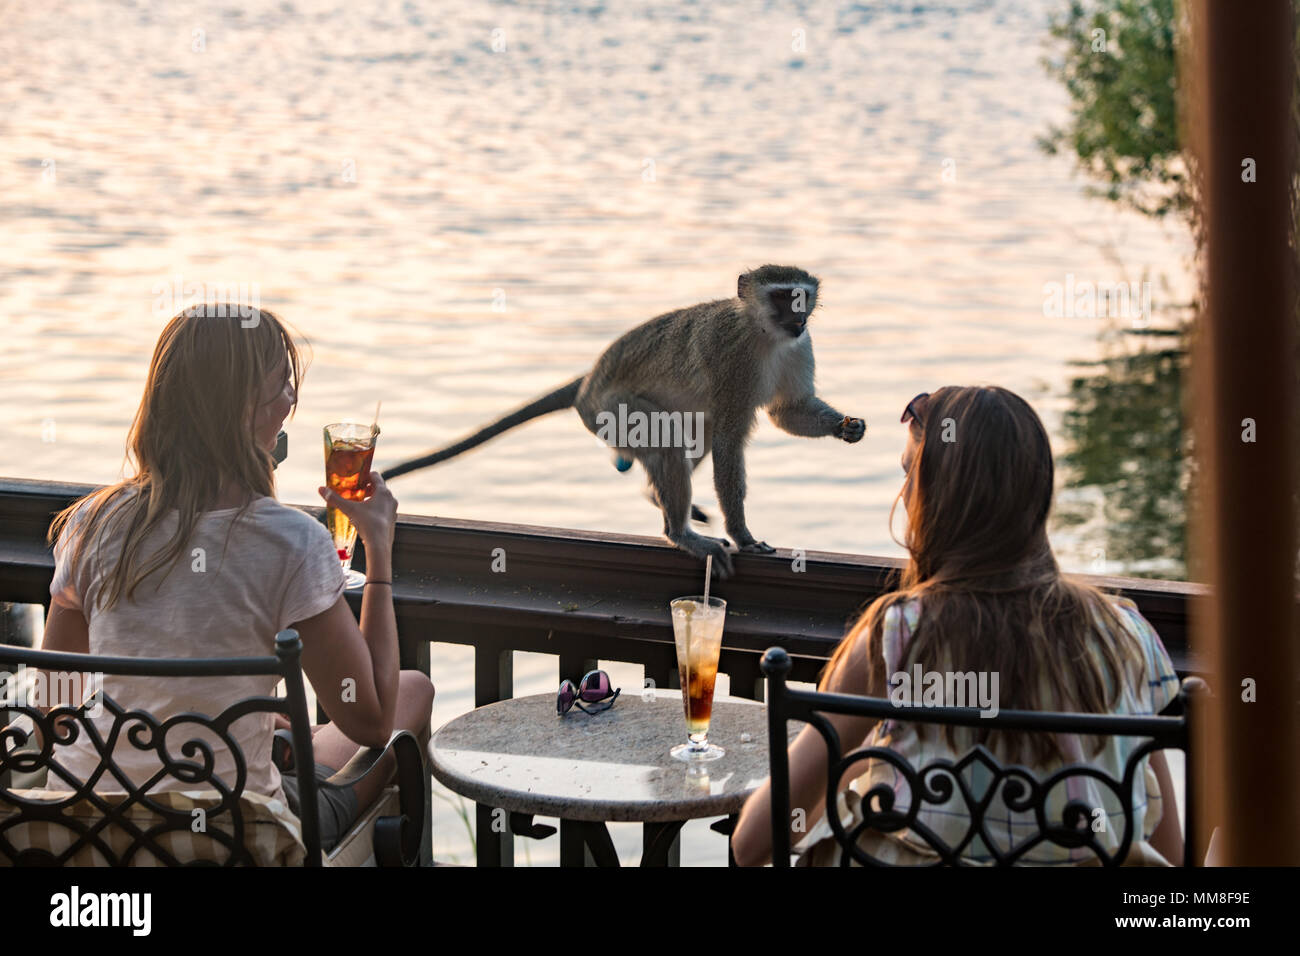 Two women on Zambezi River enjoy drinks as a Vervet monkey approaches them on the sundeck of the Royal Livingston Hotel Livingstone, Zambia - Stock Image